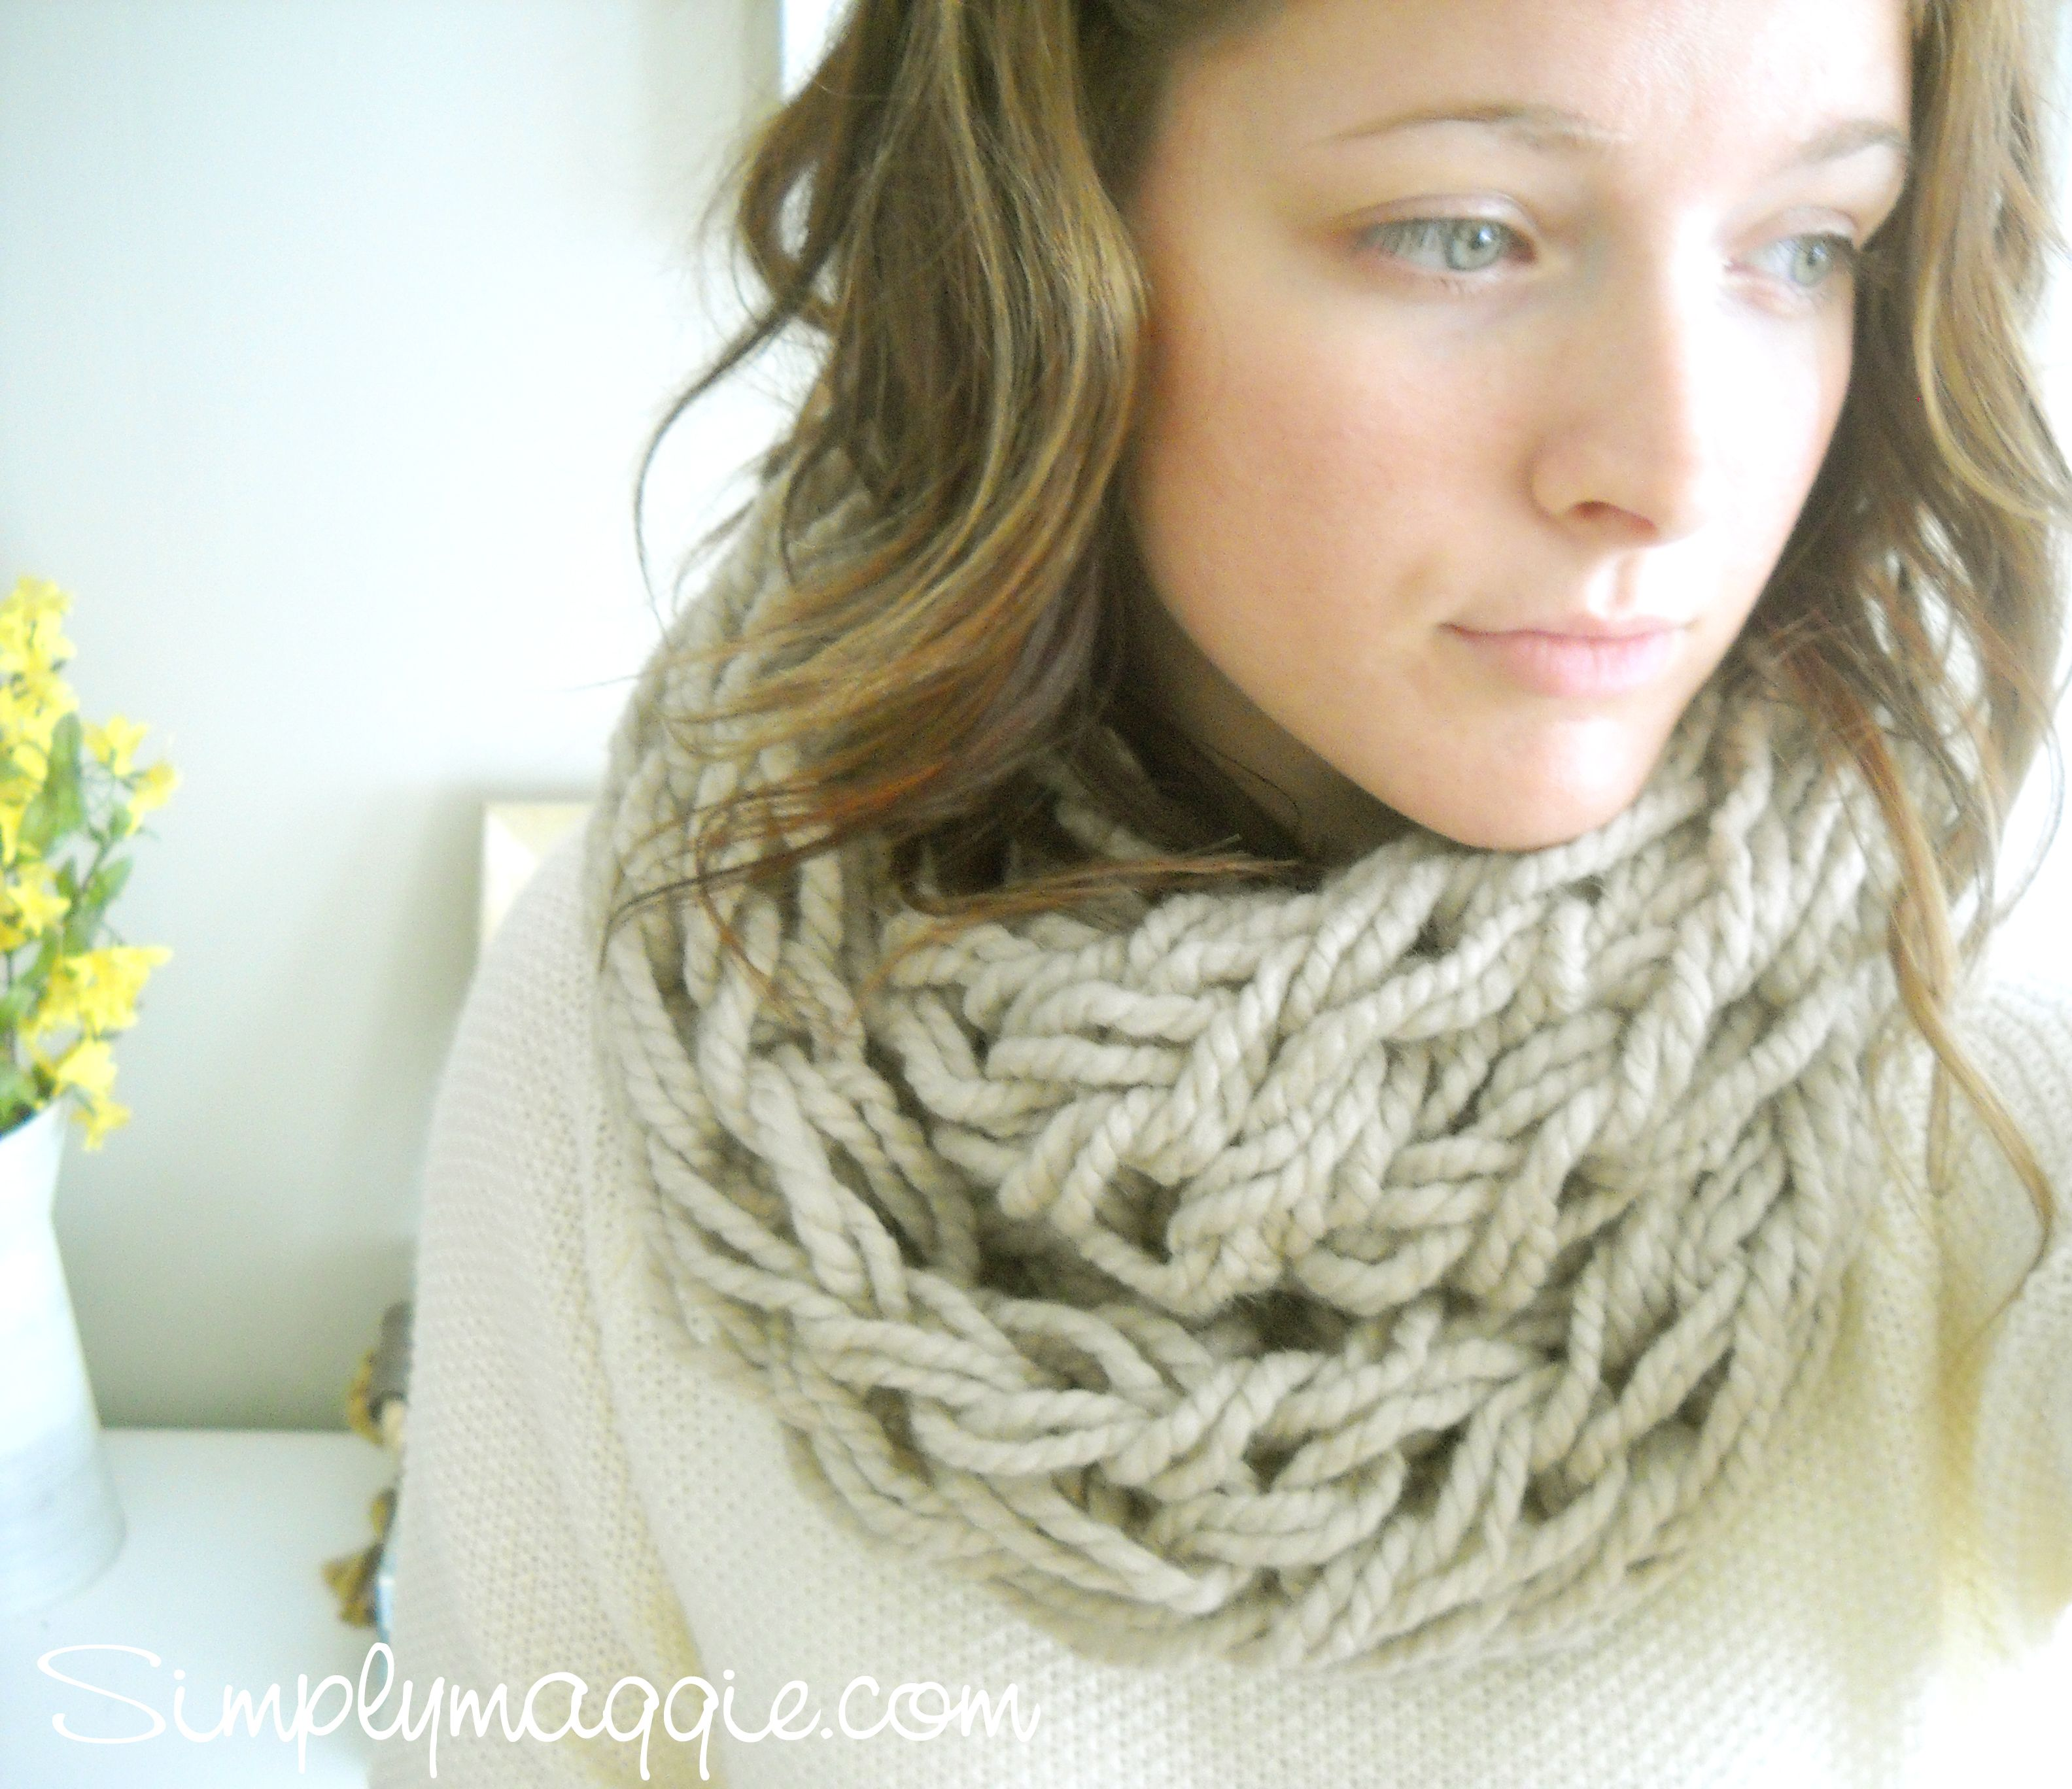 Knit using your arms as the needles! Supposedly quick and easy ...